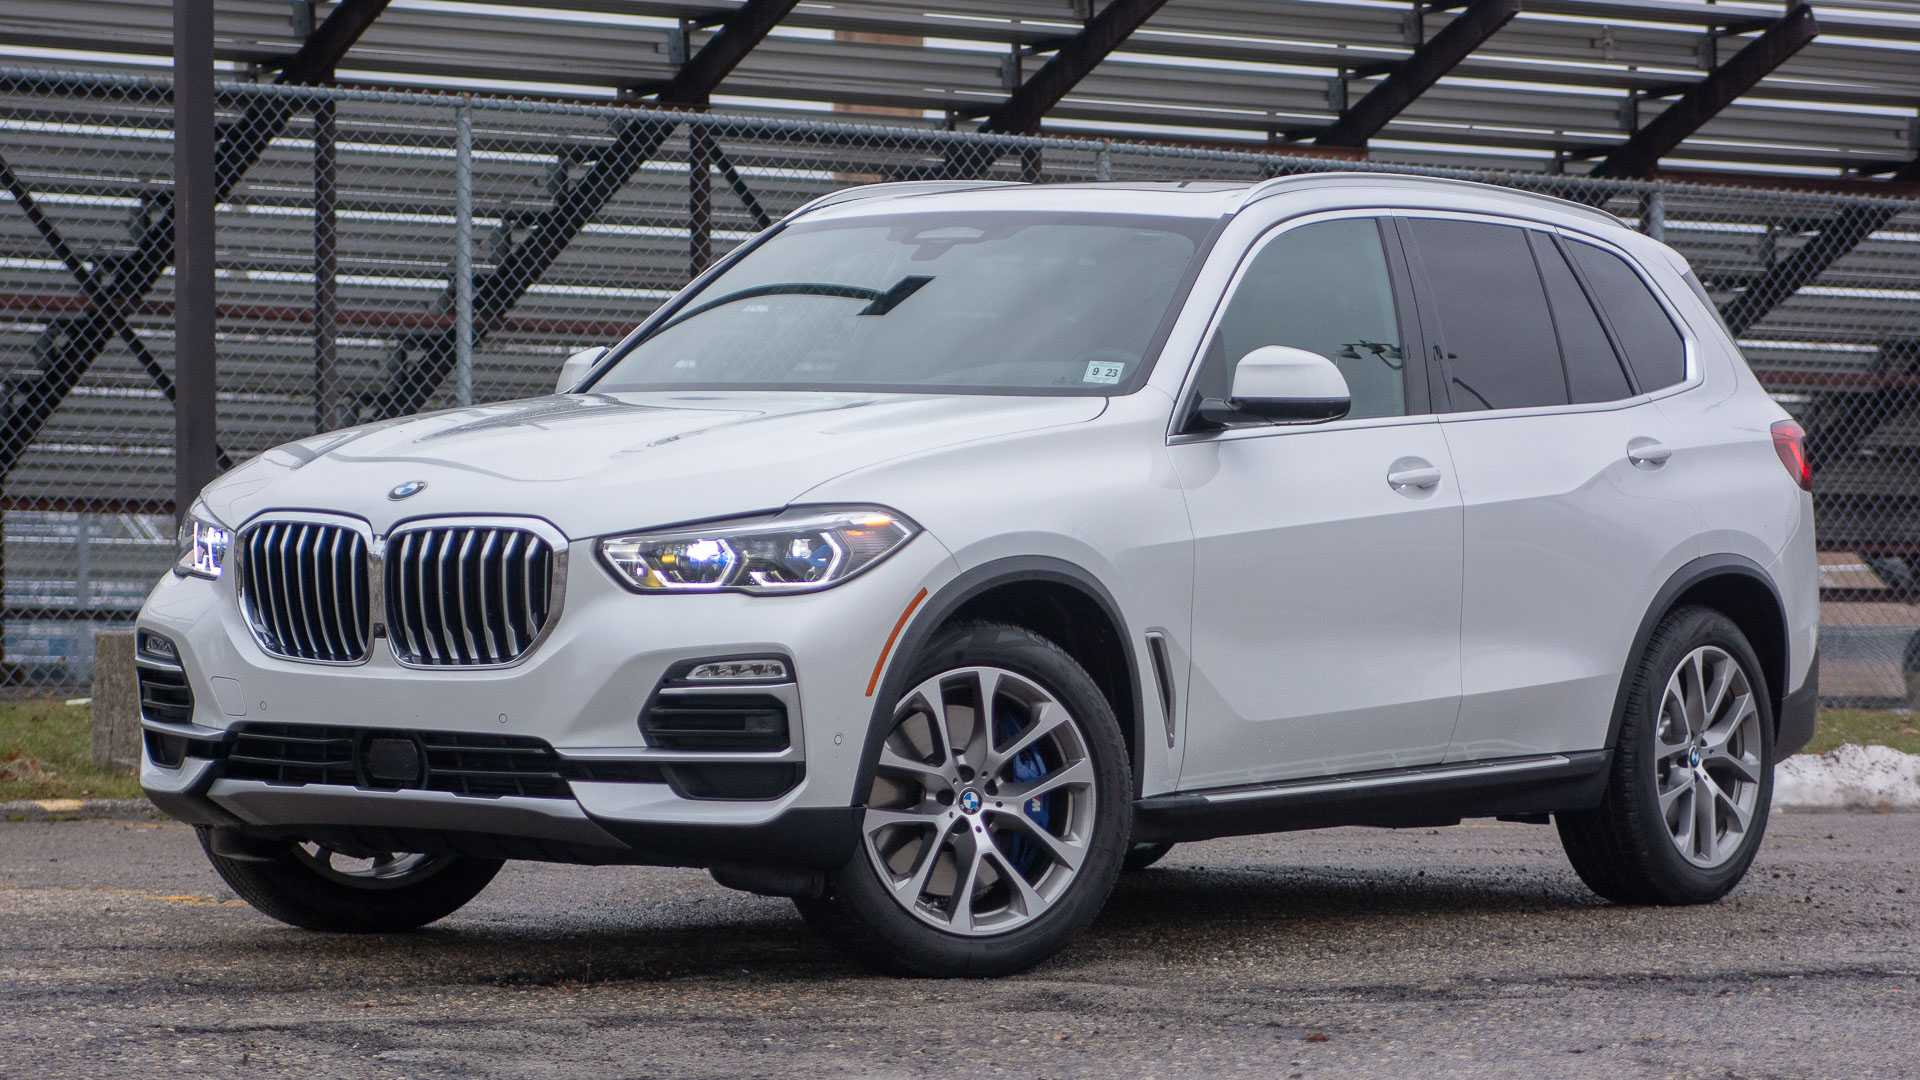 30 Best 2019 BMW X5 Review And Release Date